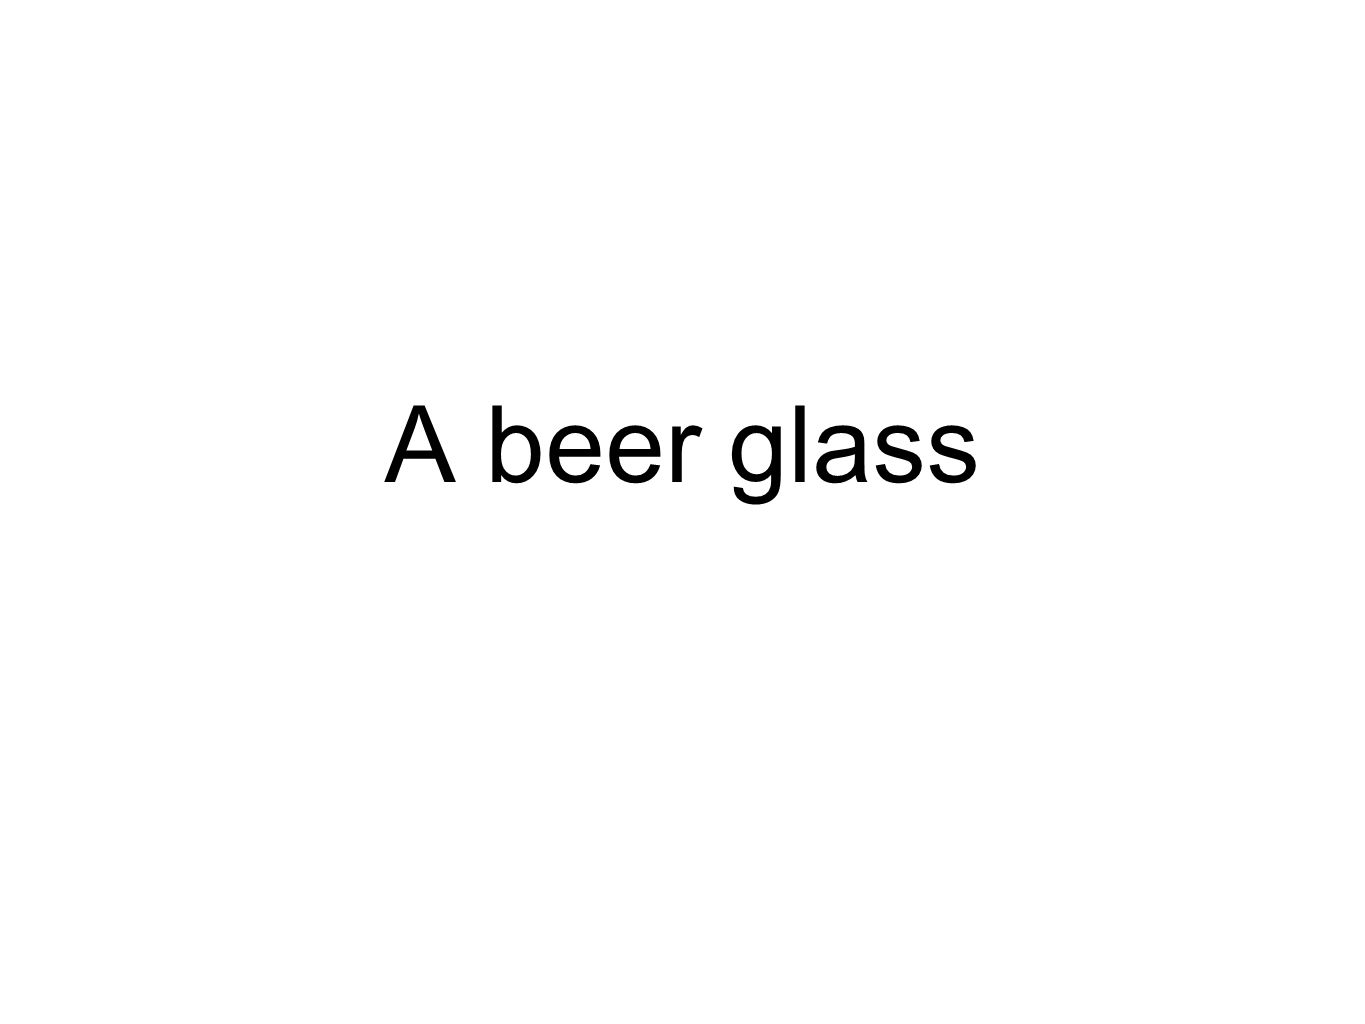 A beer glass